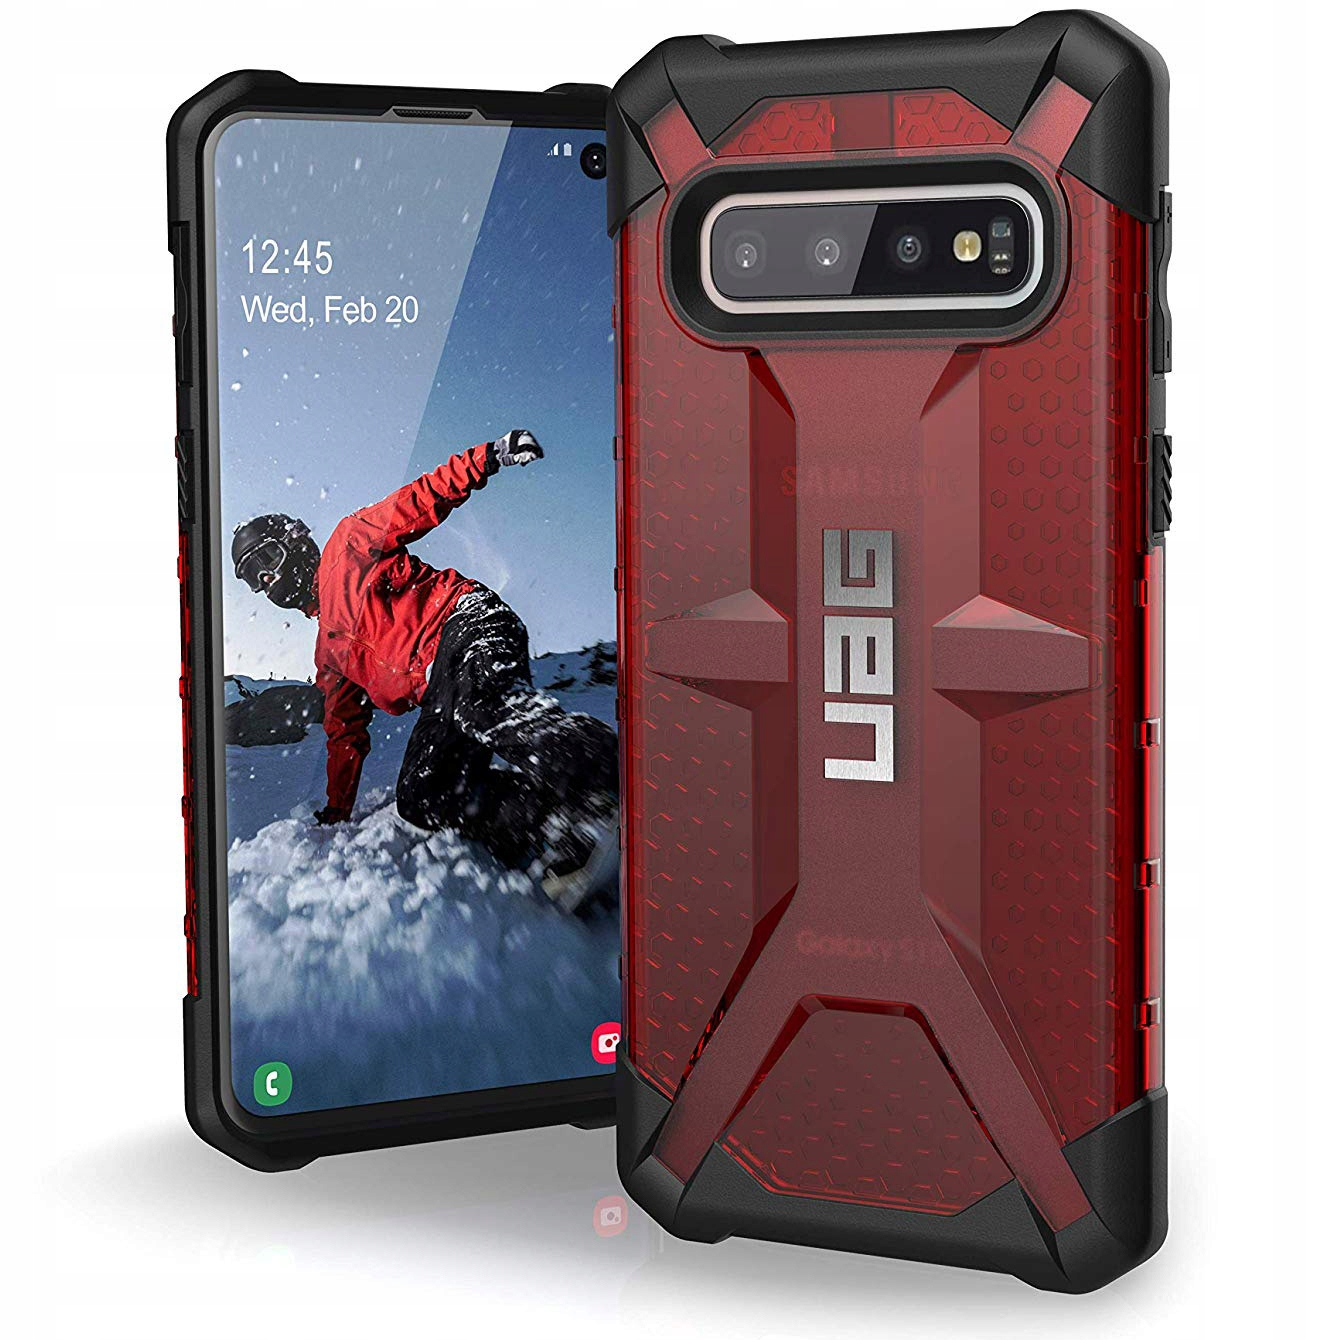 Etui pancerne Urban Armor Gear do Galaxy S10 Uag P